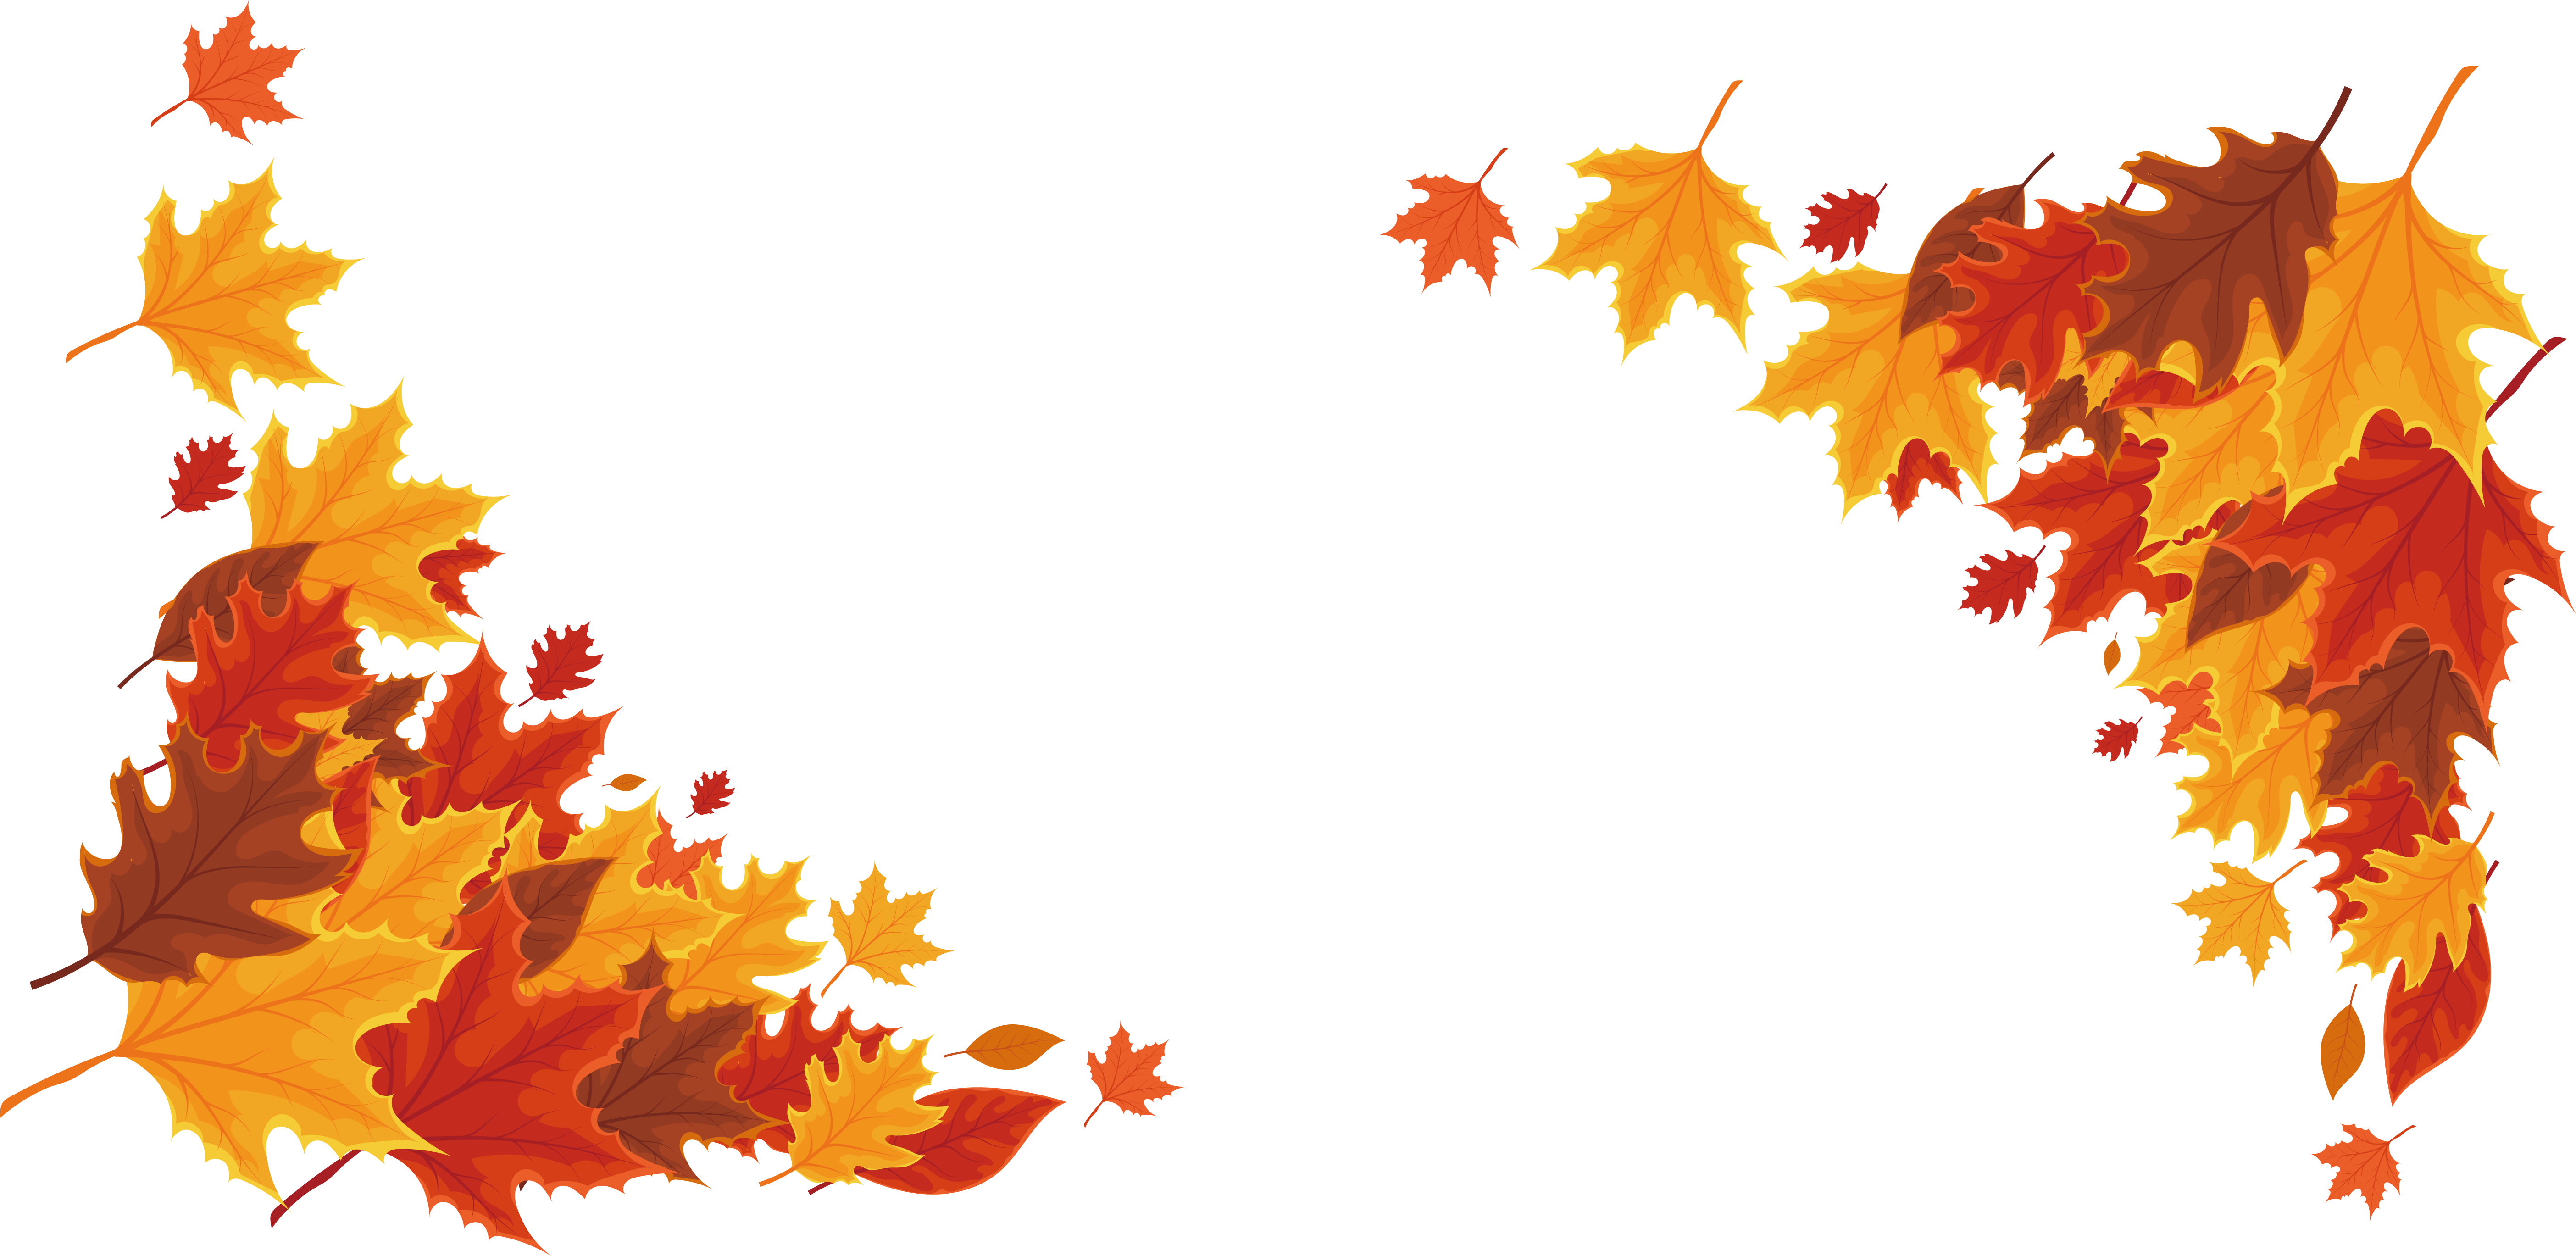 Red maple leaf transprent. Autumn border png